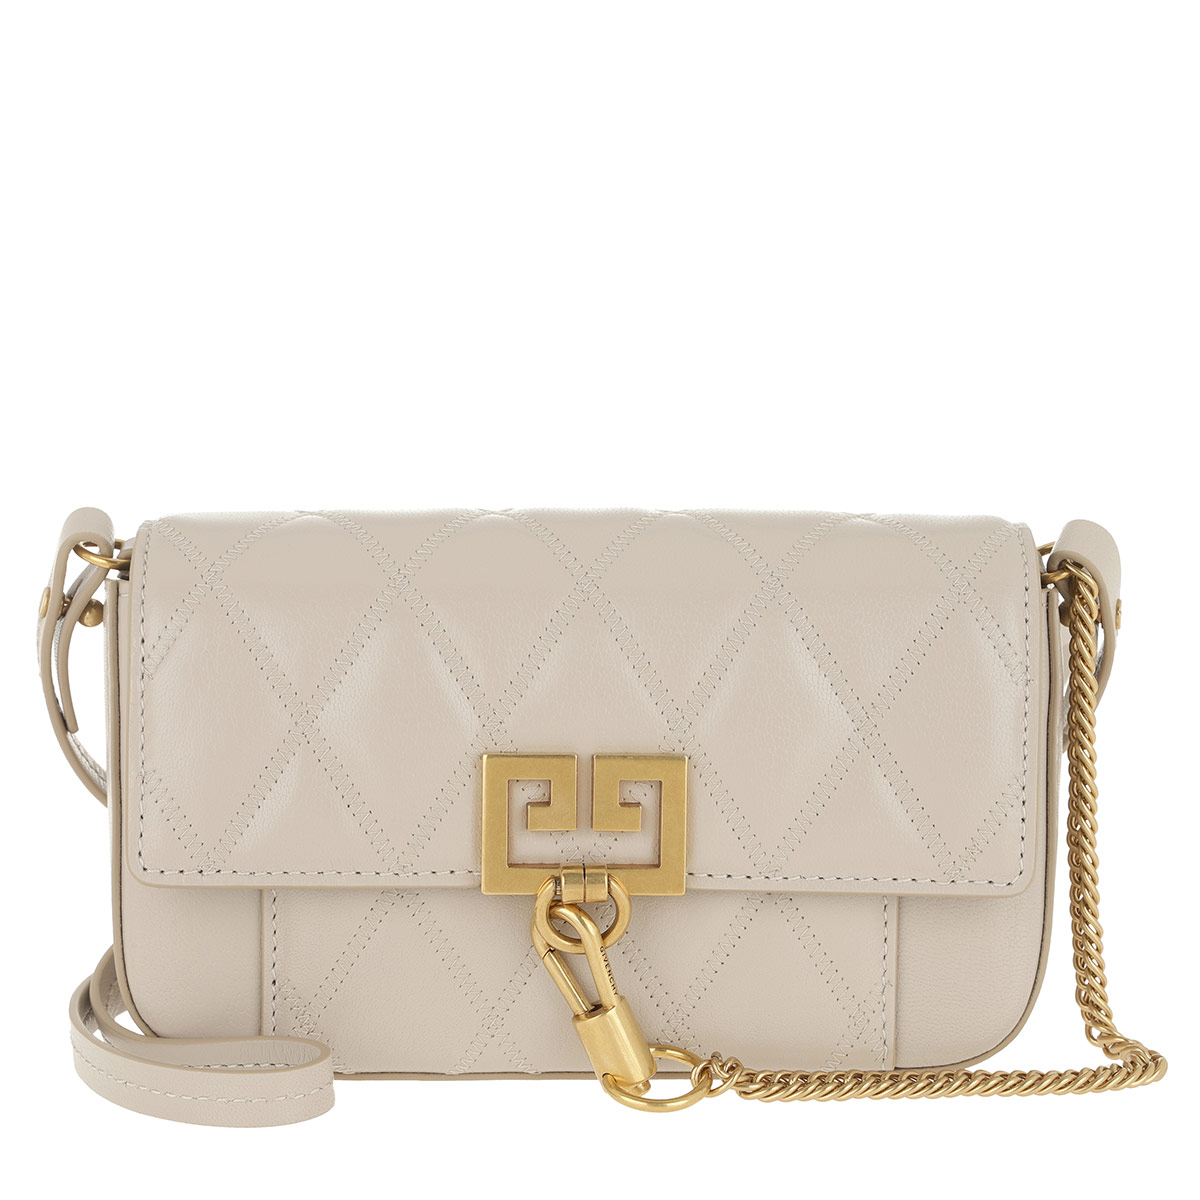 Givenchy Umhängetasche - Mini Pocket Bag Diamond Quilted Leather Natural - in grau - für Damen